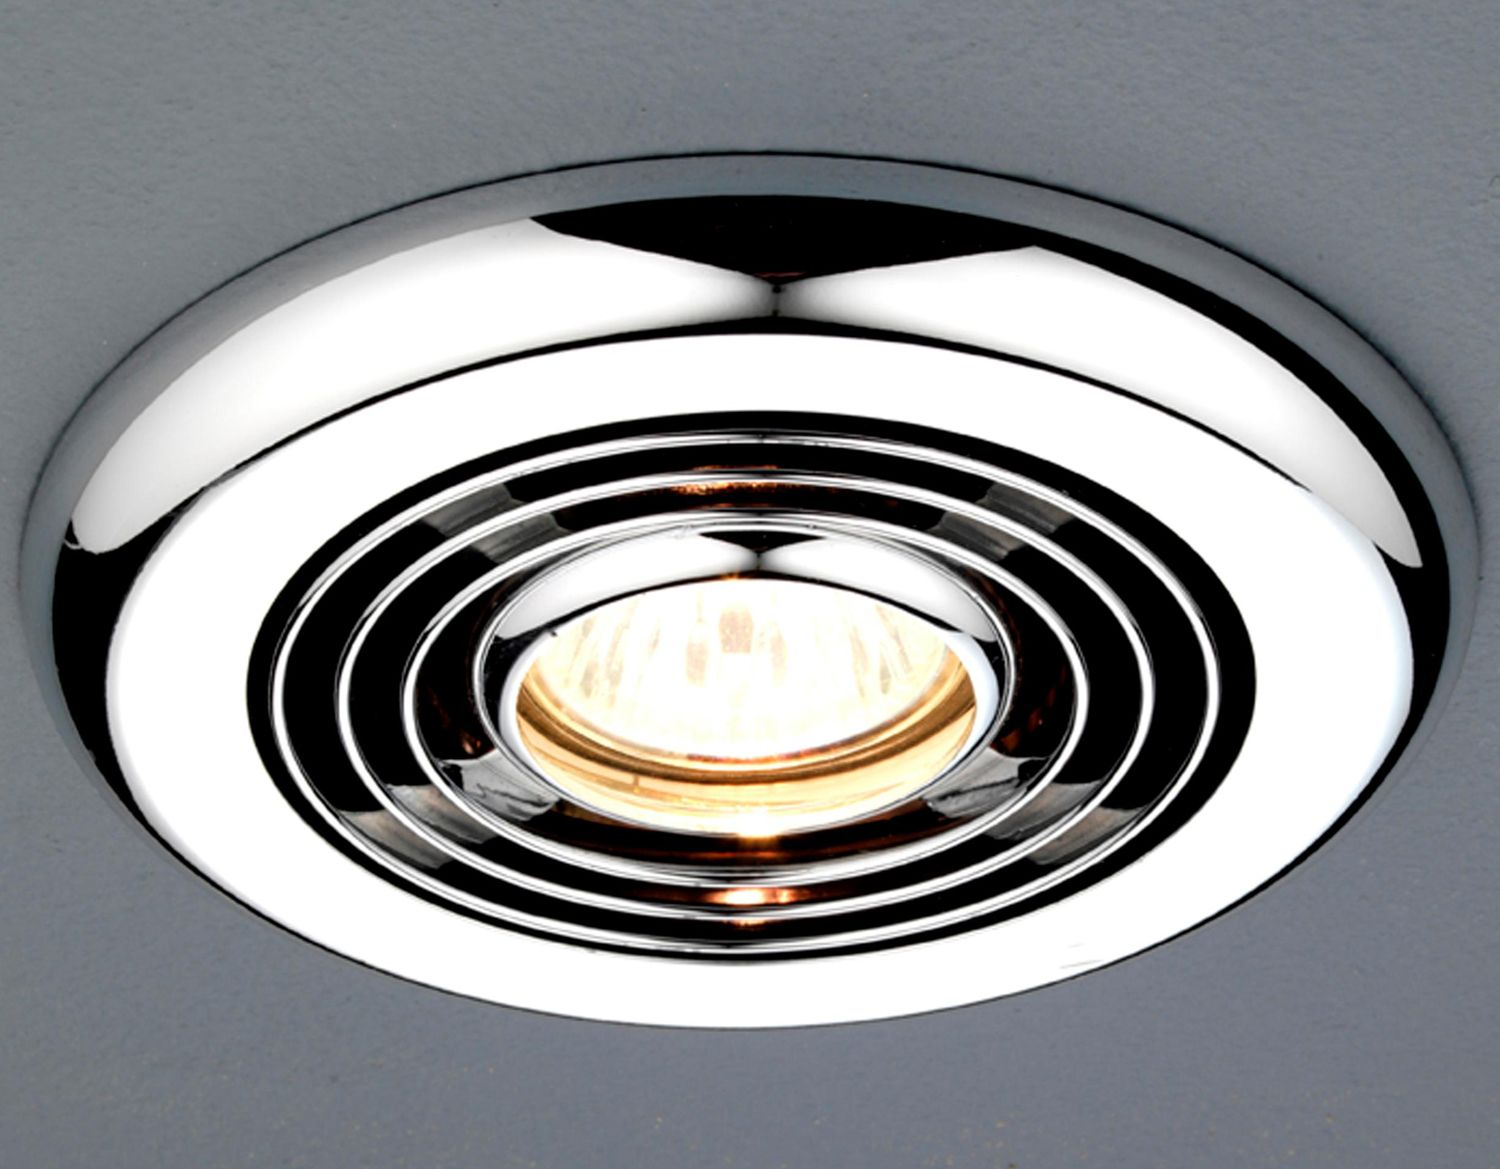 Extractor fan bathroom ceiling mounted choosing bathroom - Bathroom ceiling extractor fan with light ...